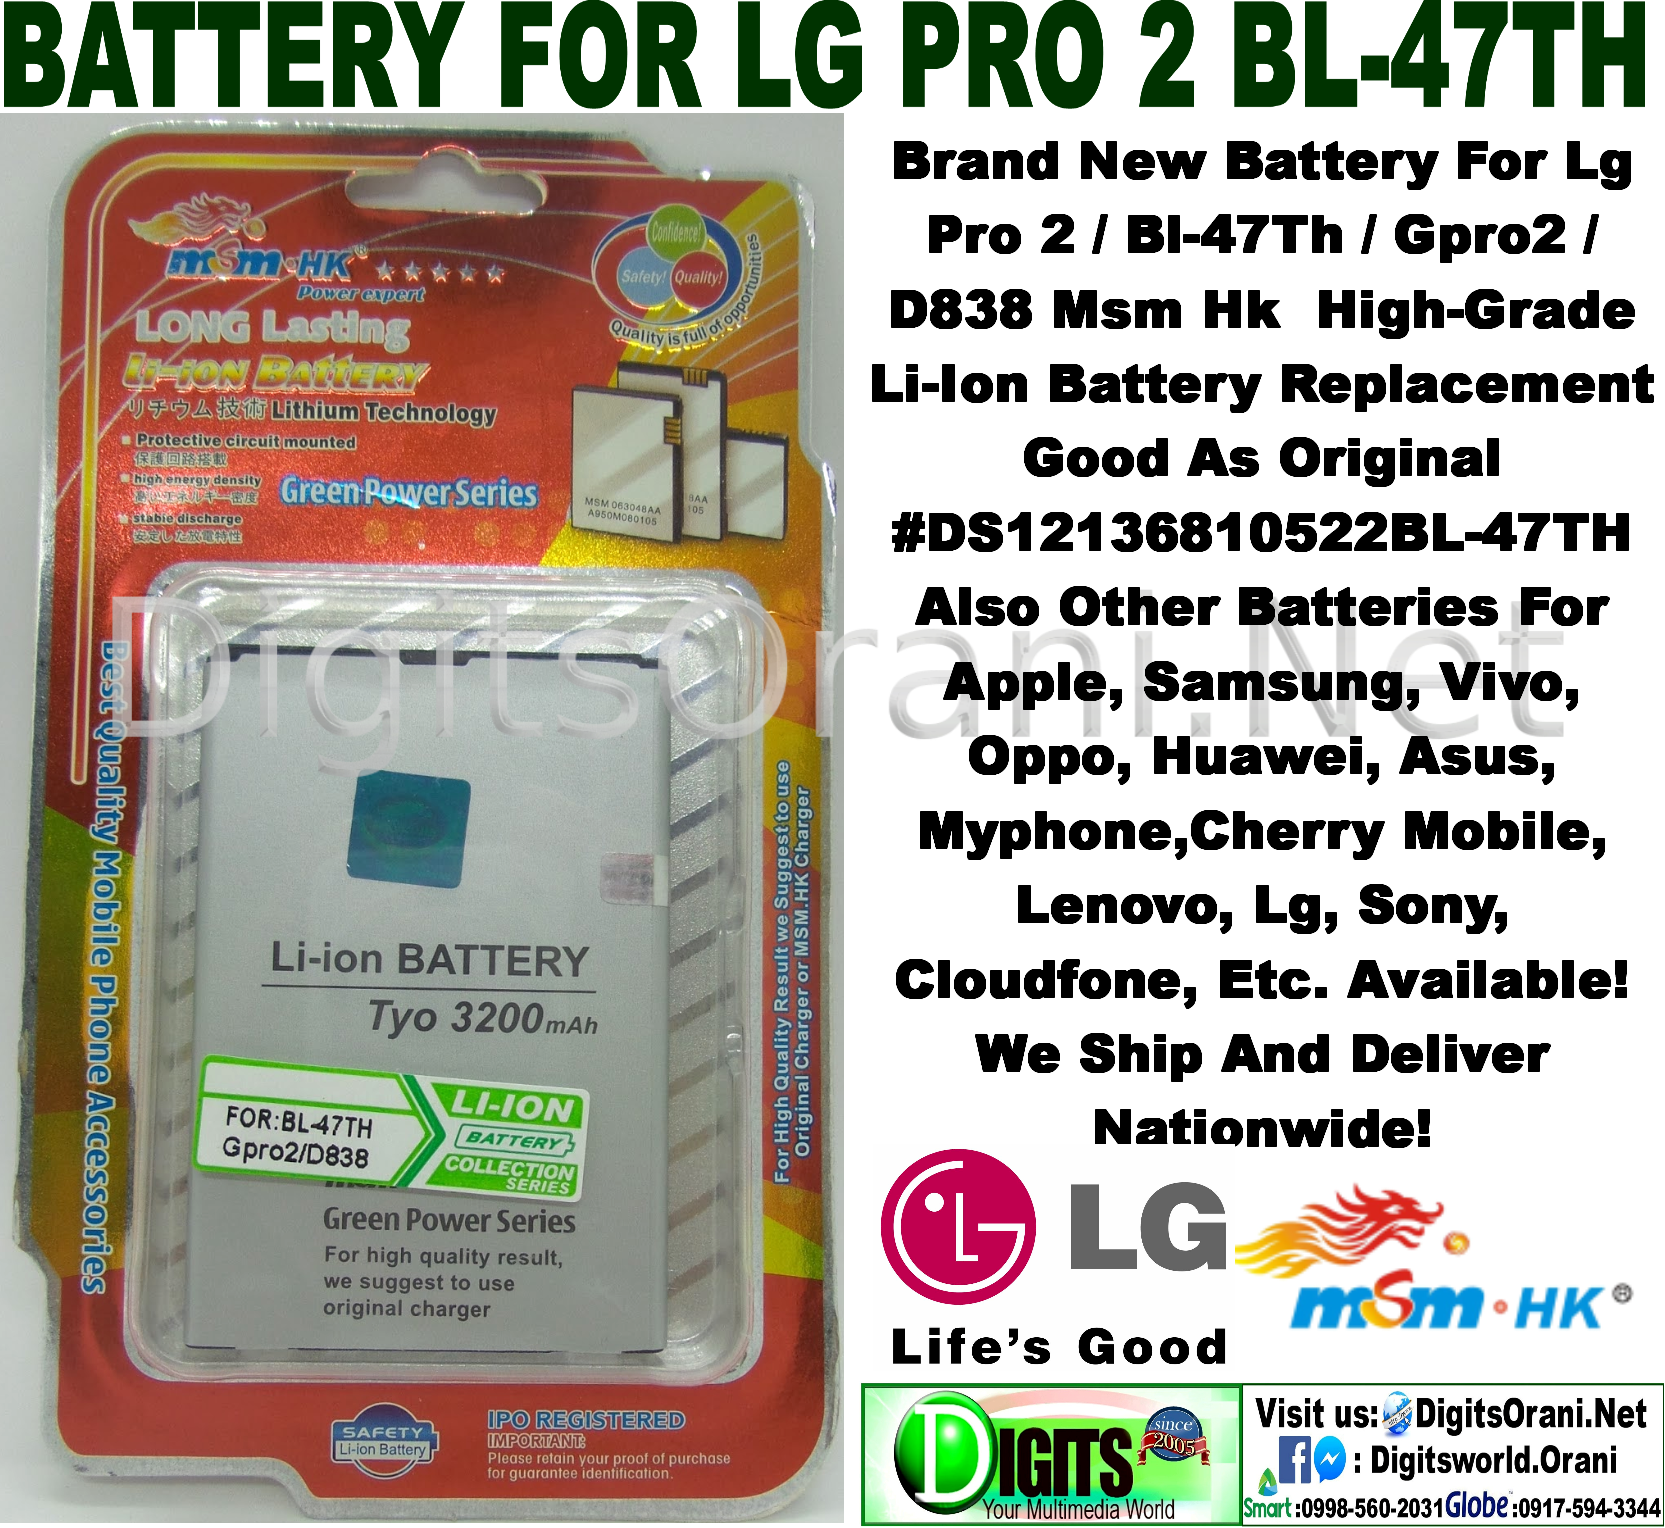 Battery For Lg Pro 2 / Bl-47Th / Gpro2 / D838 Msm Hk High-Grade Li-Ion  Battery Replacement Good As Original #Ds12136810522Bl-47Th